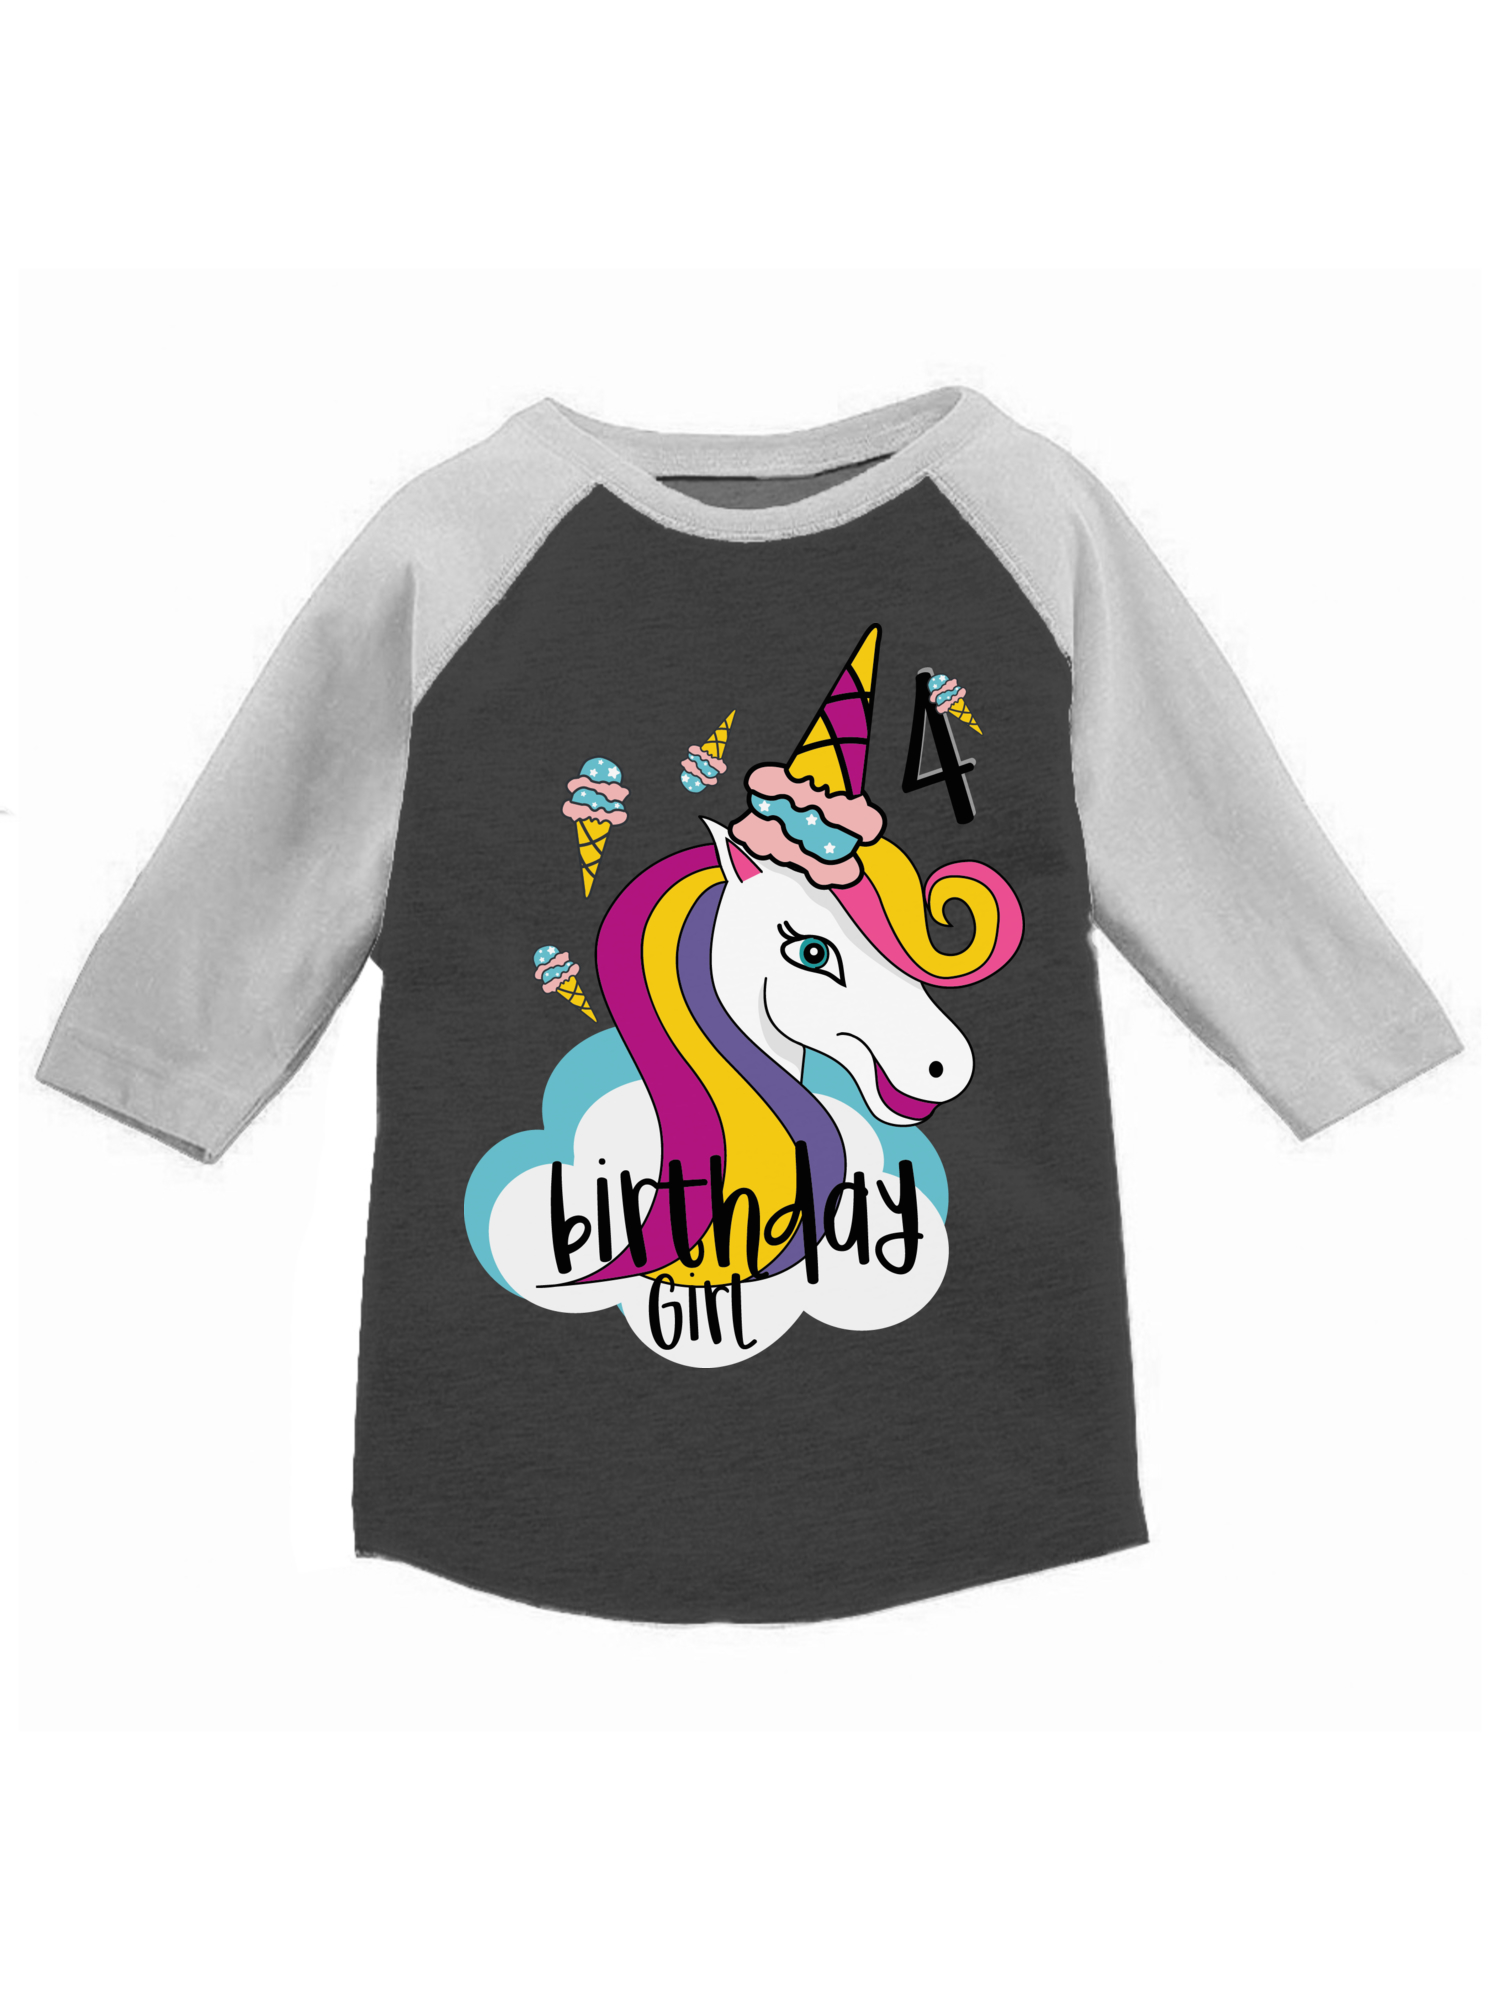 Awkward Styles Birthday Girl Toddler Raglan Unicorn Jersey Shirt 4th Birthday Unicorn Gifts for 4 Year Old Girl Cute Unicorn Icecream Outfit 4th Birthday Party for Girls Unicorn Birthday Party Shirt